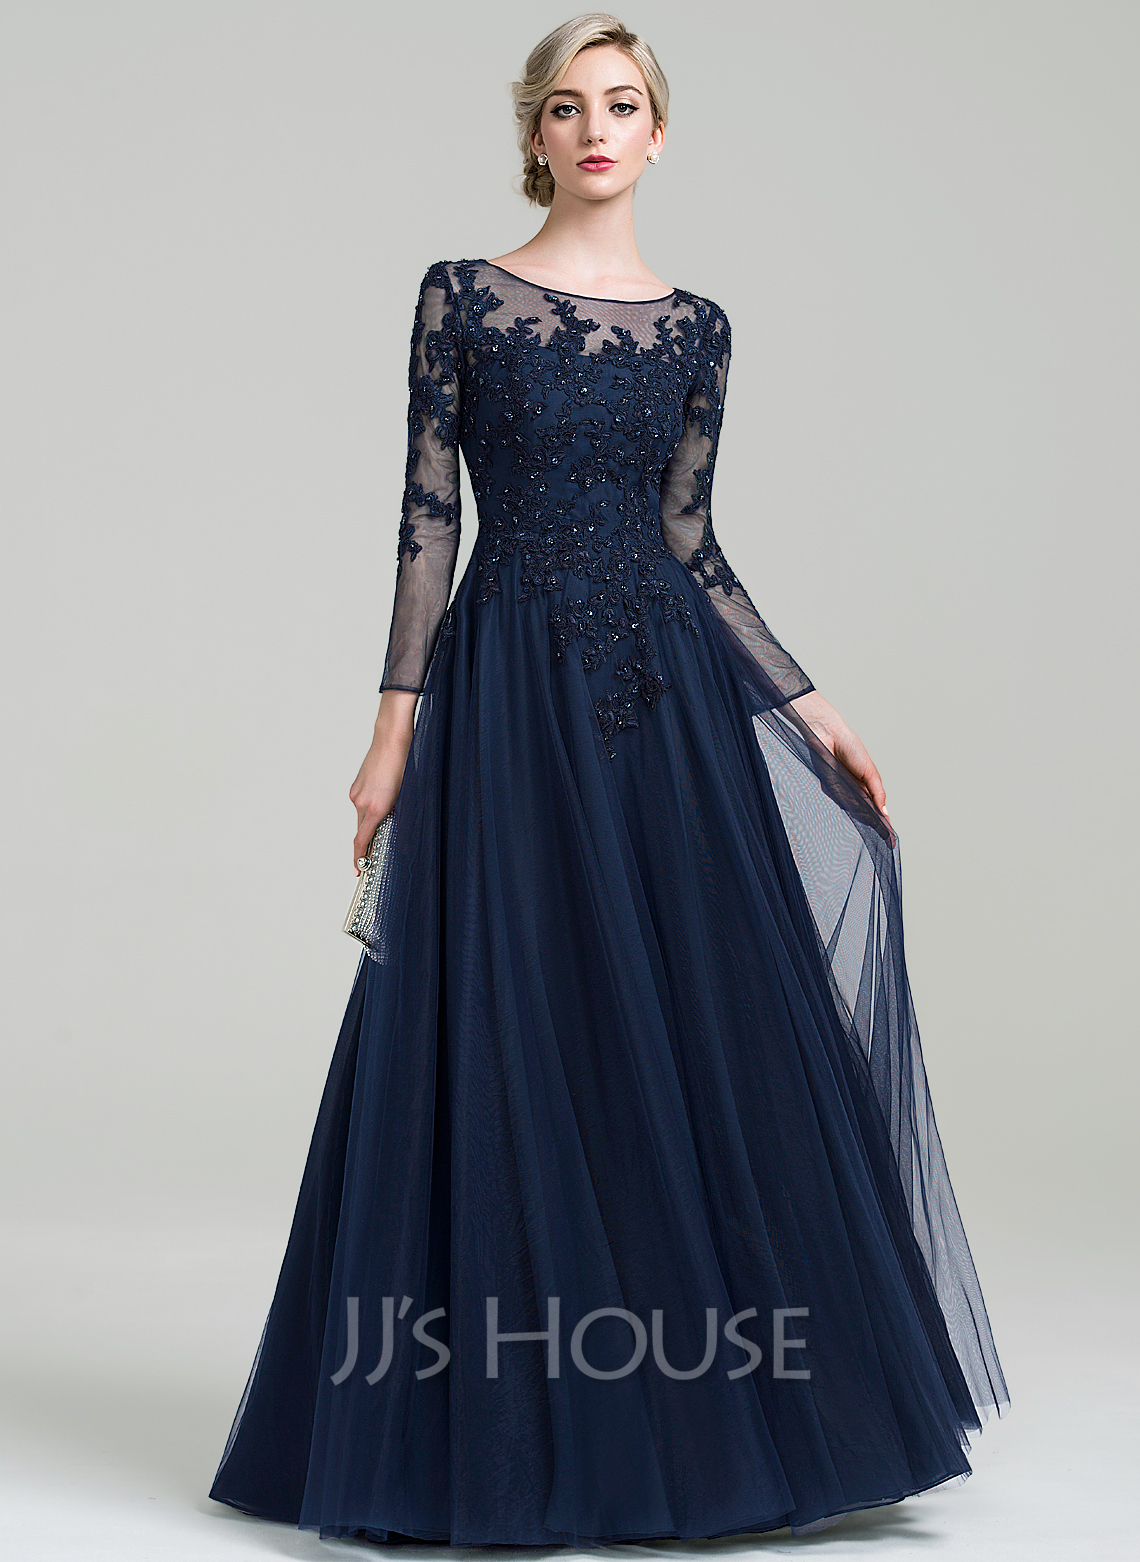 A lineprincess scoop neck floor length tulle junior bridesmaid a lineprincess scoop neck floor length tulle evening dress with beading sequins ombrellifo Choice Image